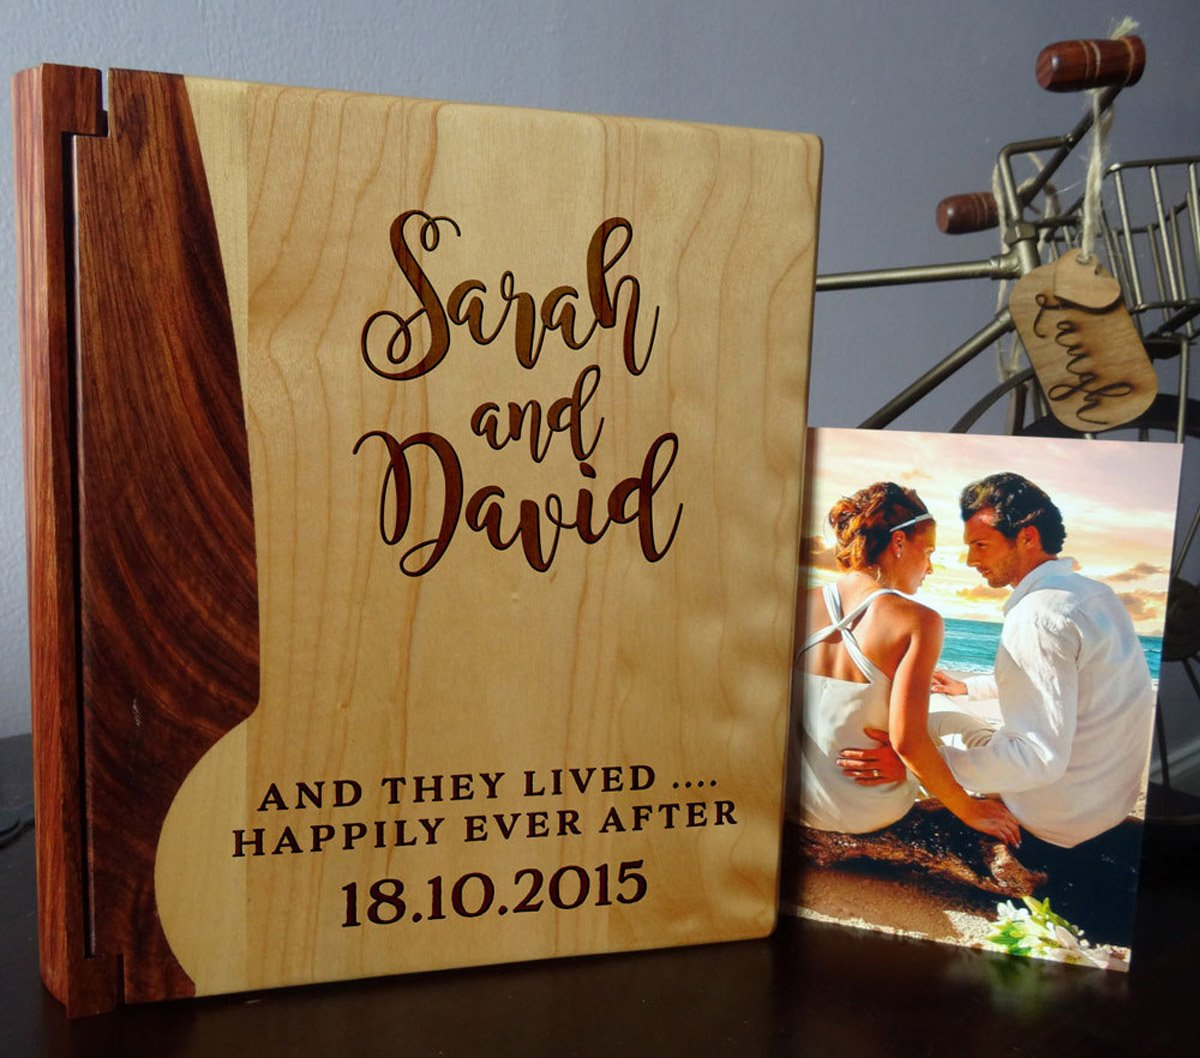 Personalized Wood Cover Photo Album, Custom Engraved Wedding Album, Style 102 (Maple & Rosewood Cover) LoveToCreateStamps